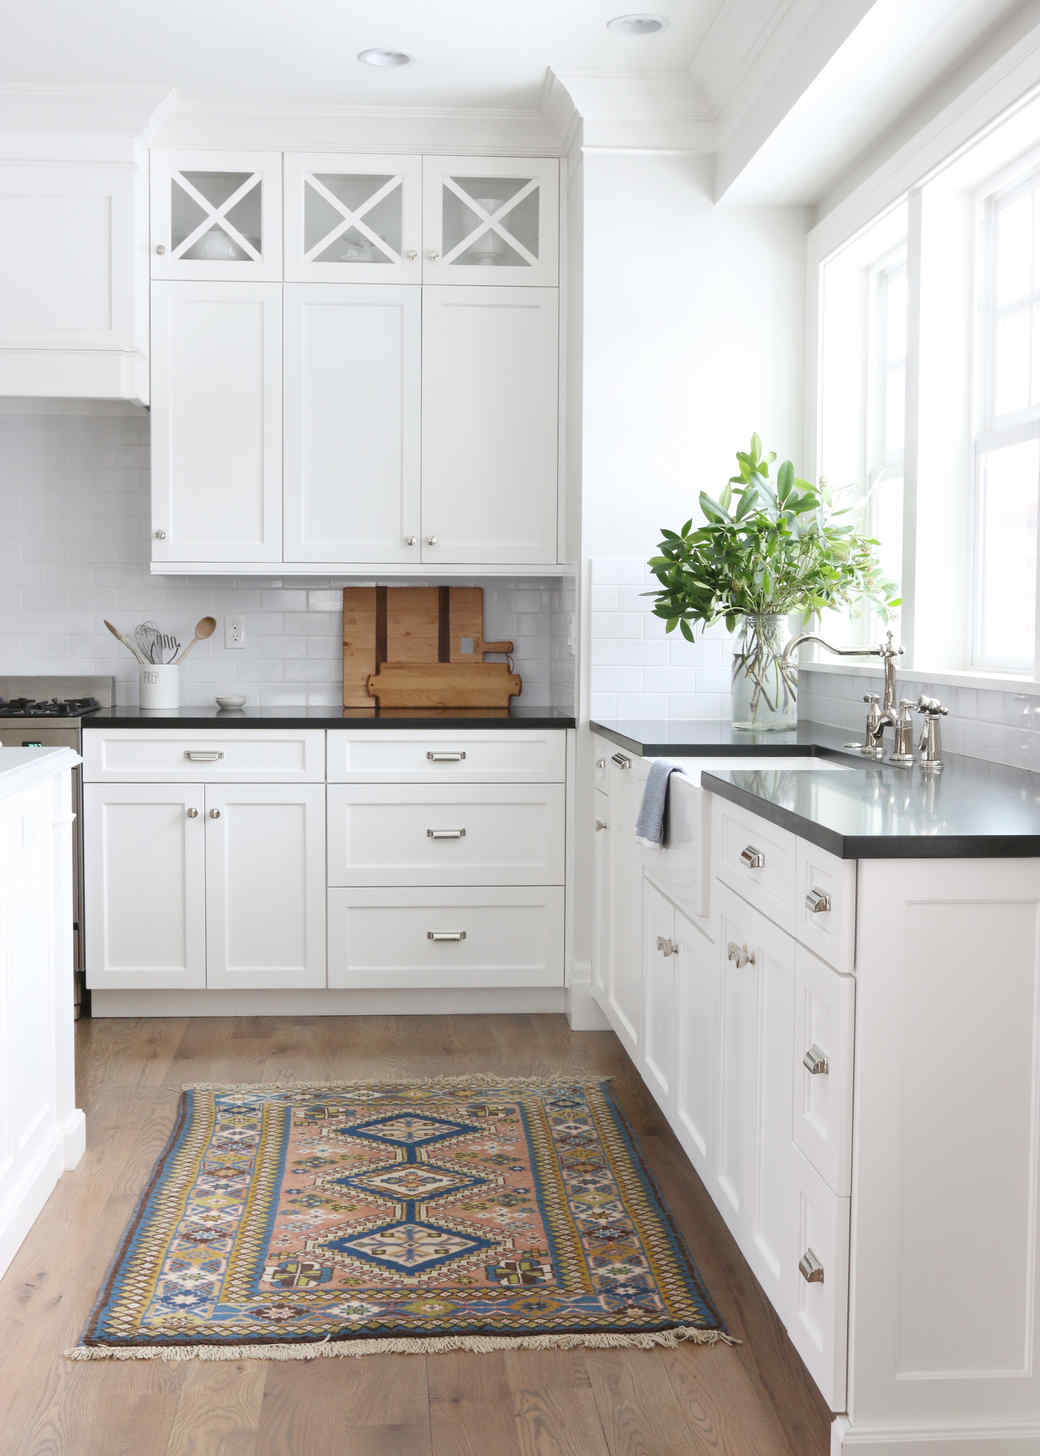 Kitchen design ideas martha stewart - Martha stewart kitchen design ...